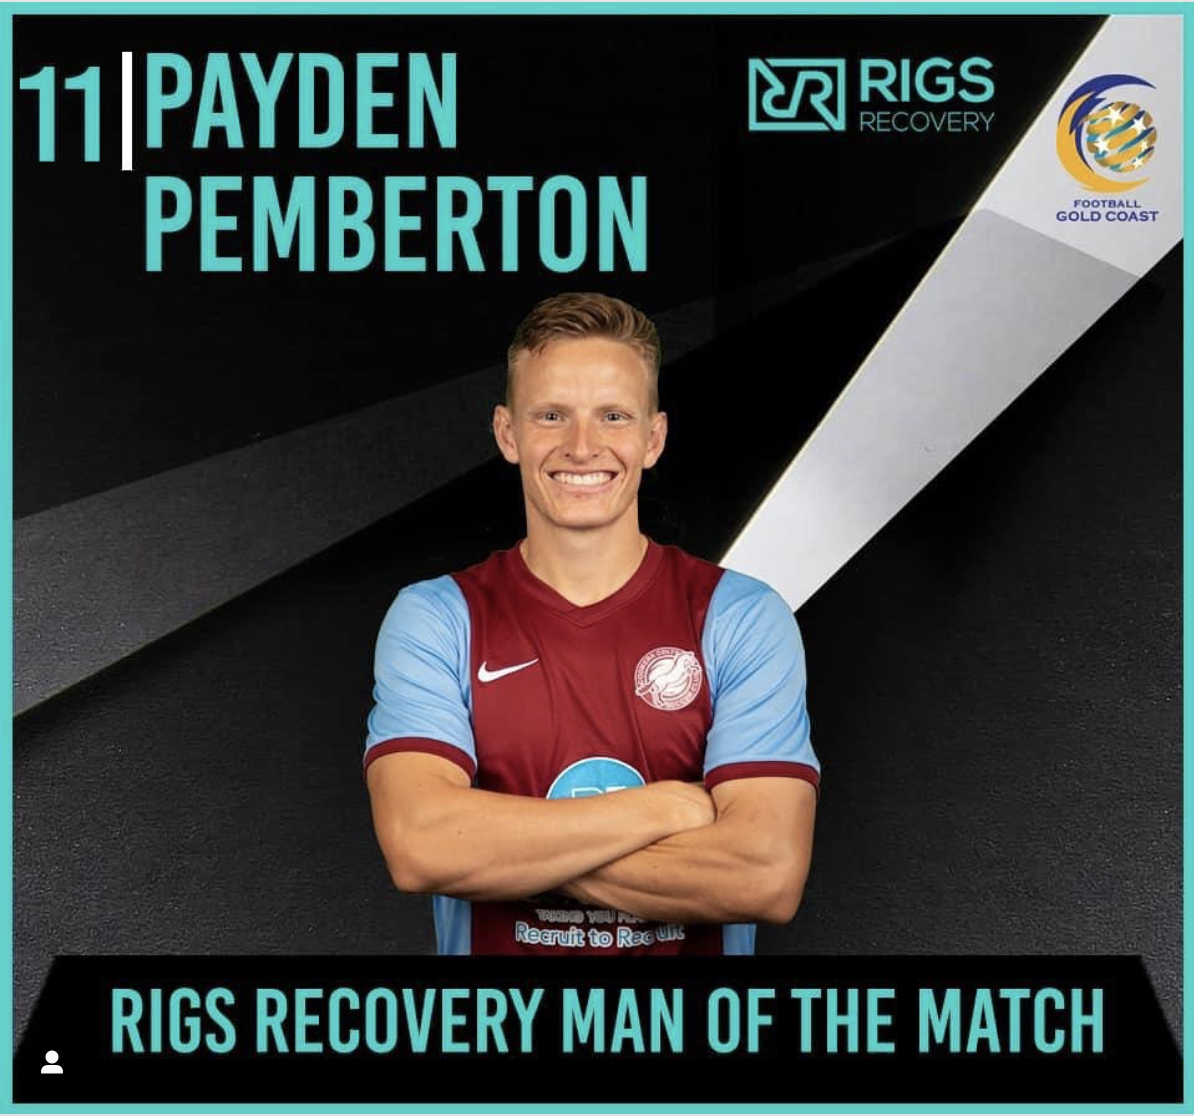 Payden having success in Australia, we can help you play soccer in Australia